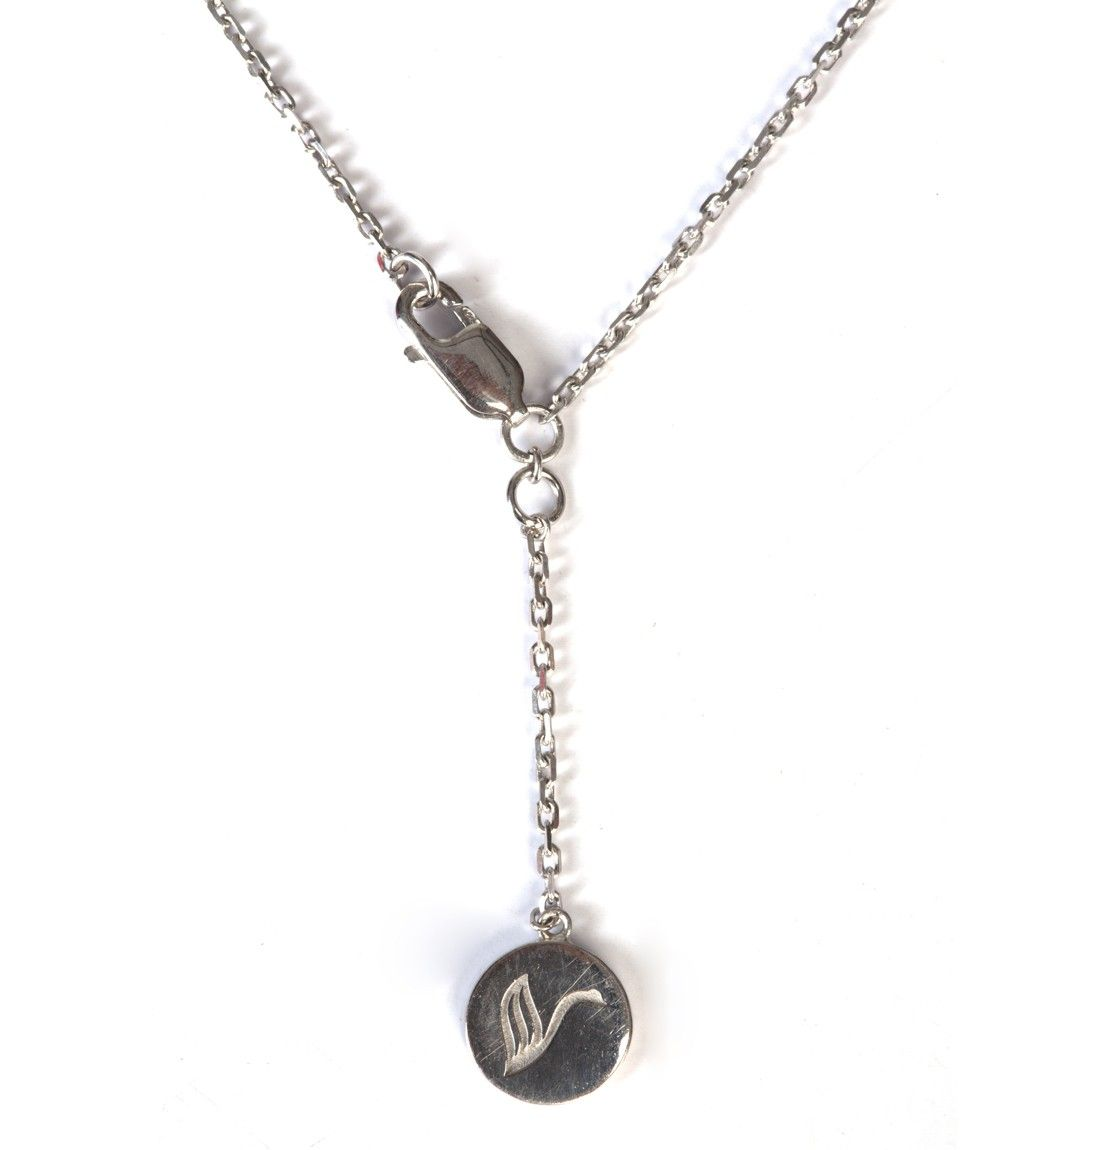 A girl's Best Friend - Marilyn Silver Necklace